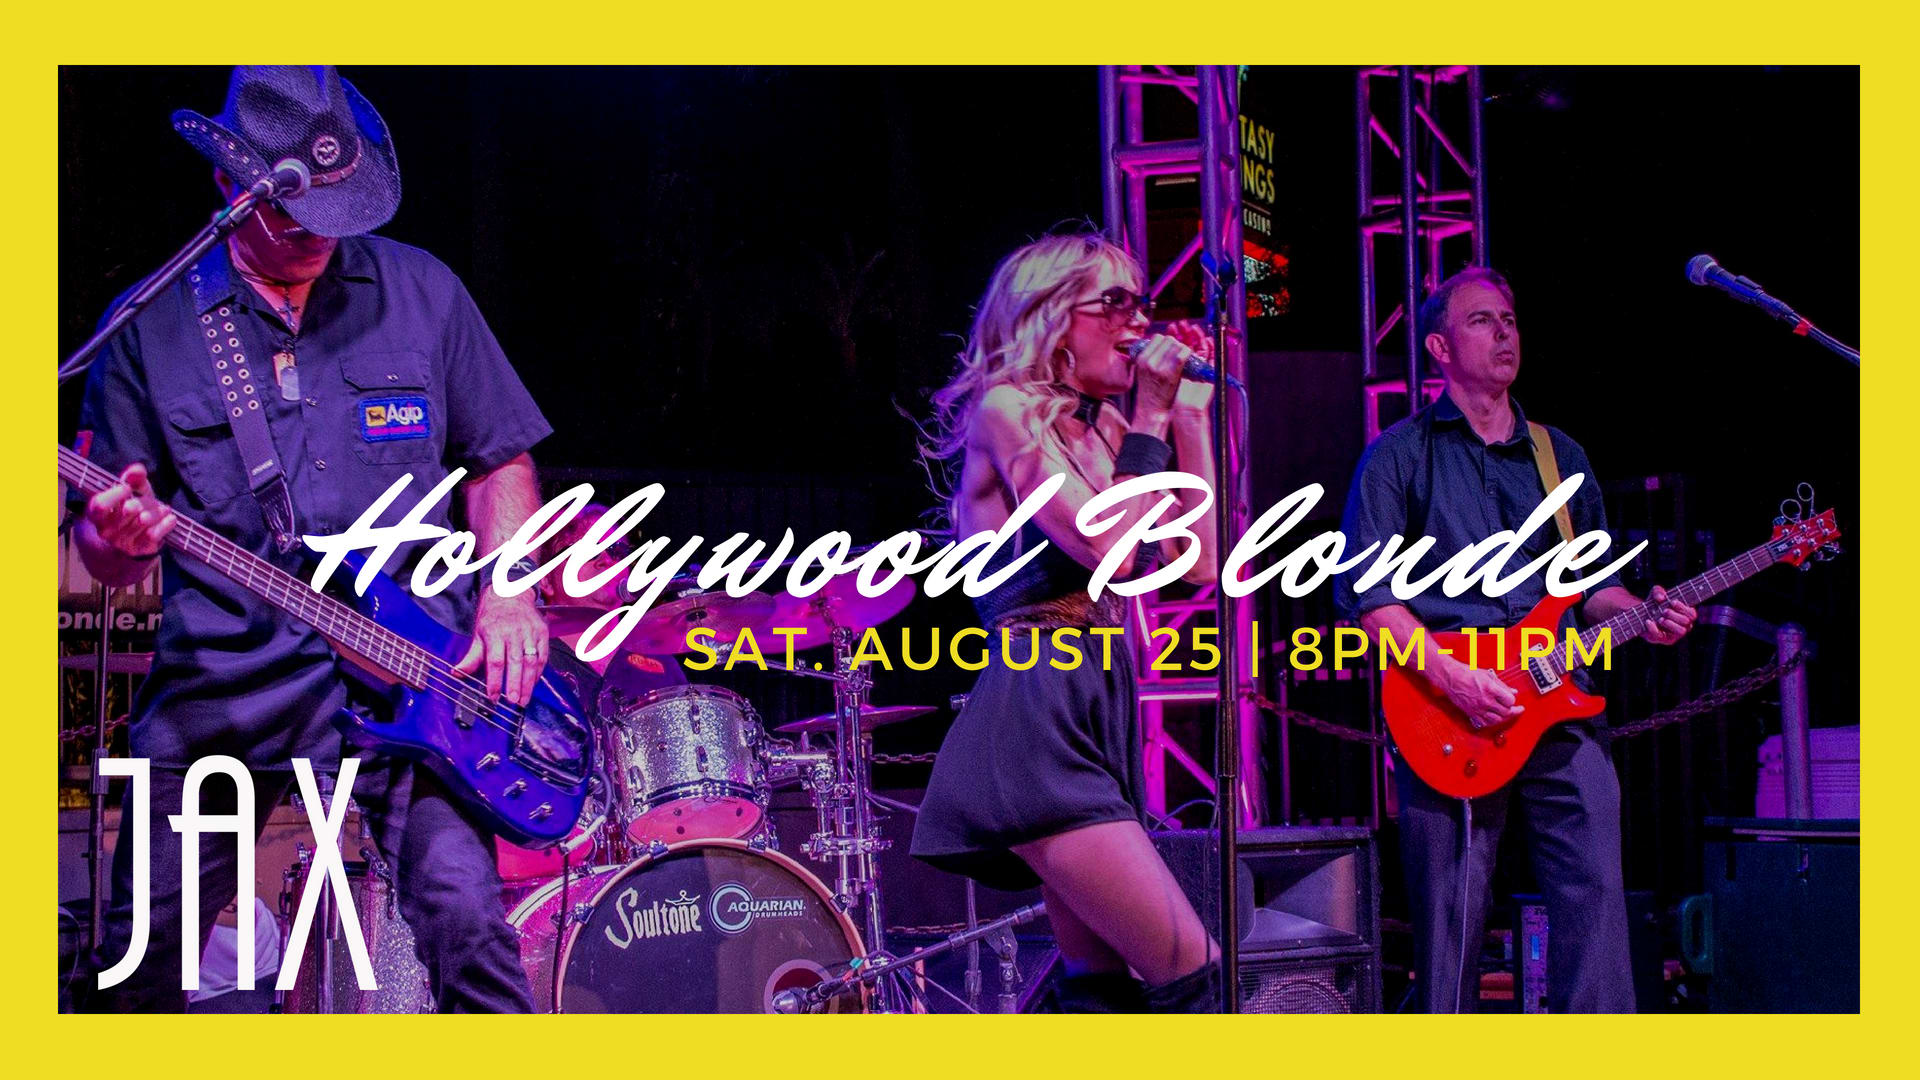 August 25 | HOLLYWOOD BLONDE